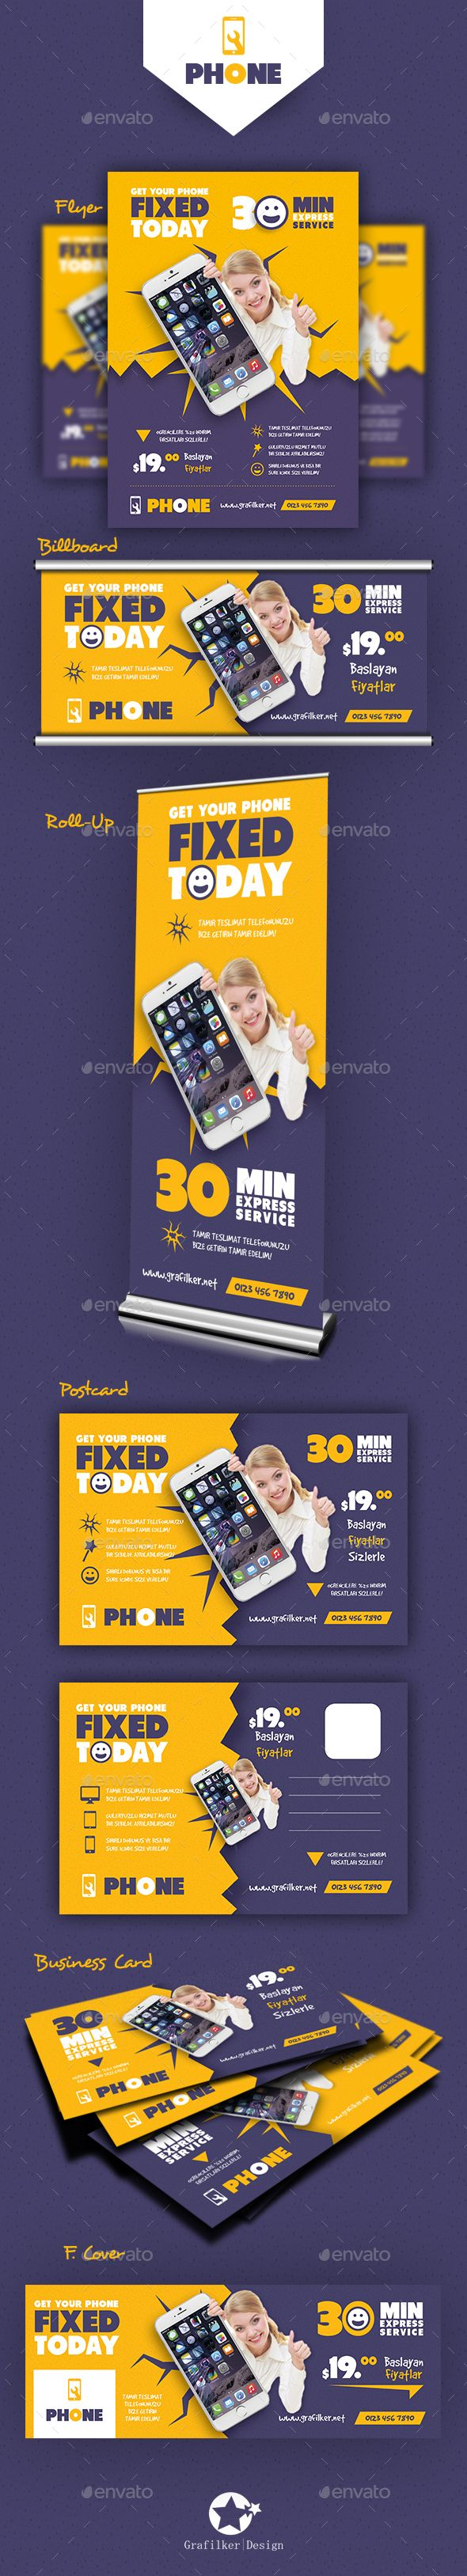 Phone Repair Bundle Templates  Template Flyer Template And Psd